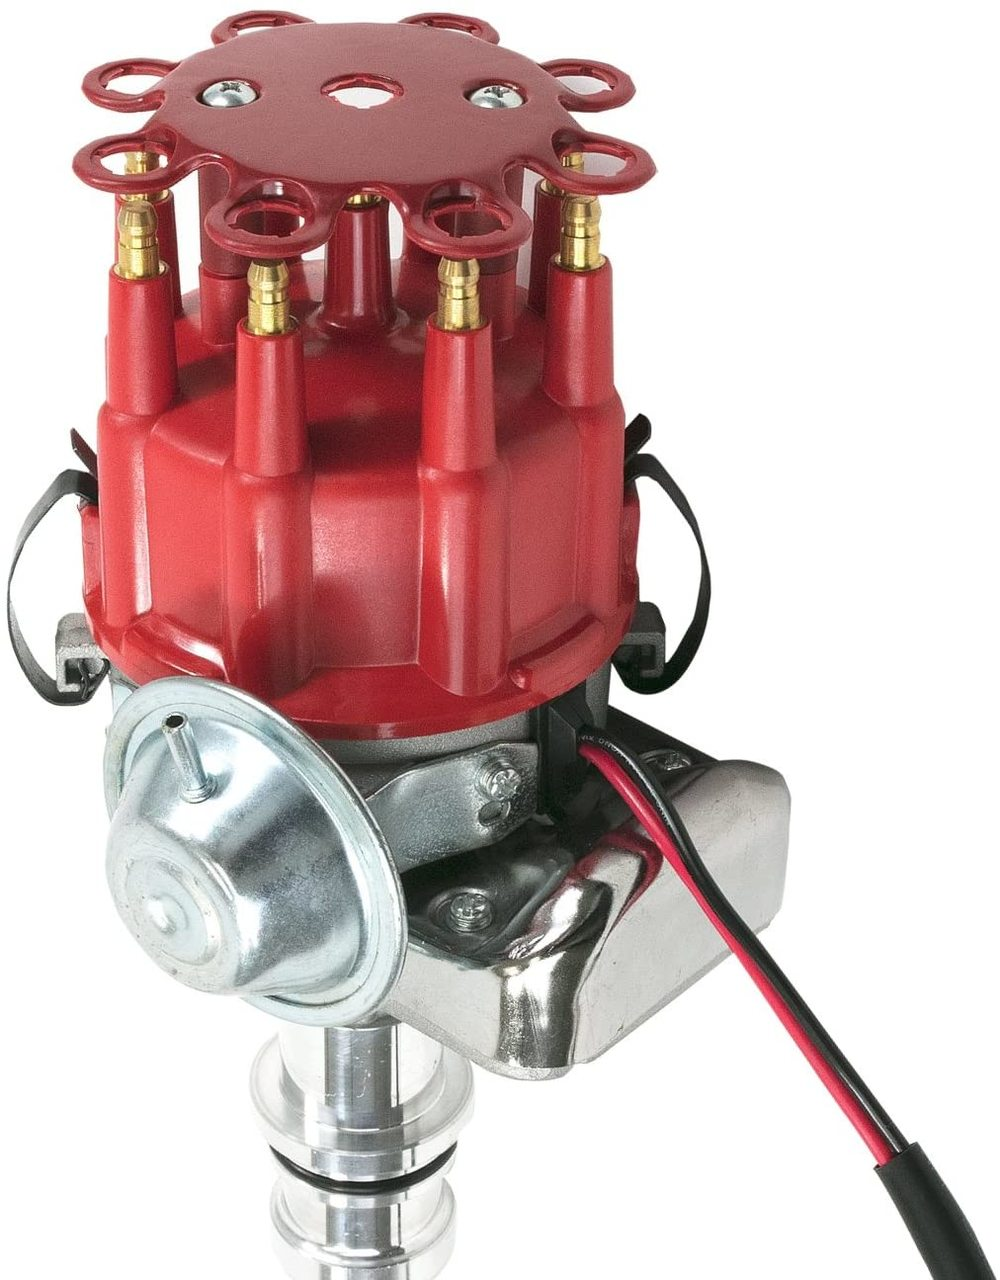 A-Team Performance Ford Small Block 289-302 Ready-to-Run Distributor